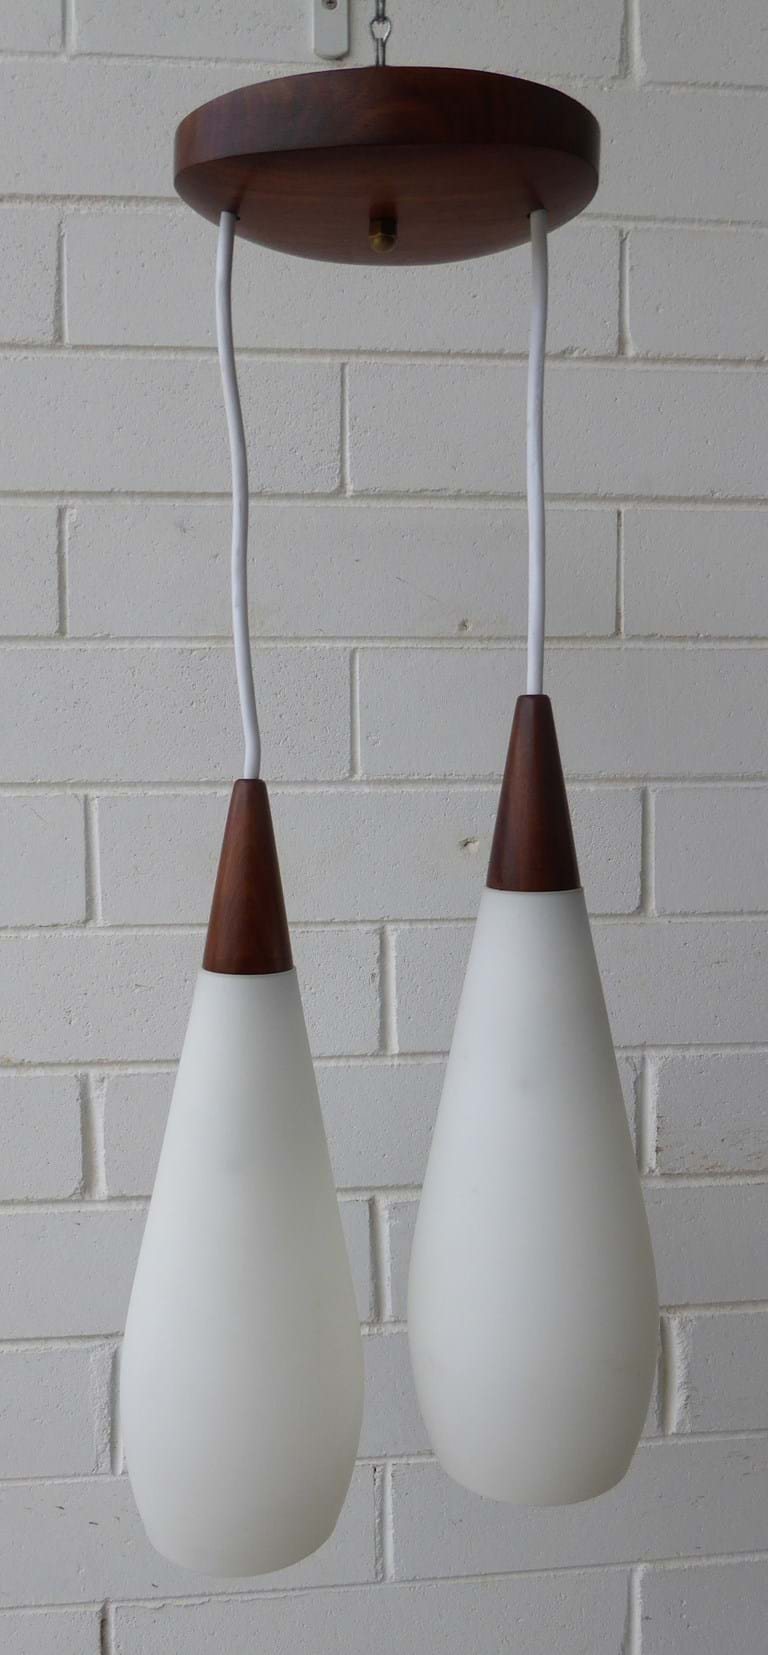 1960s two-drop pendant light fitting with satin white glass shades